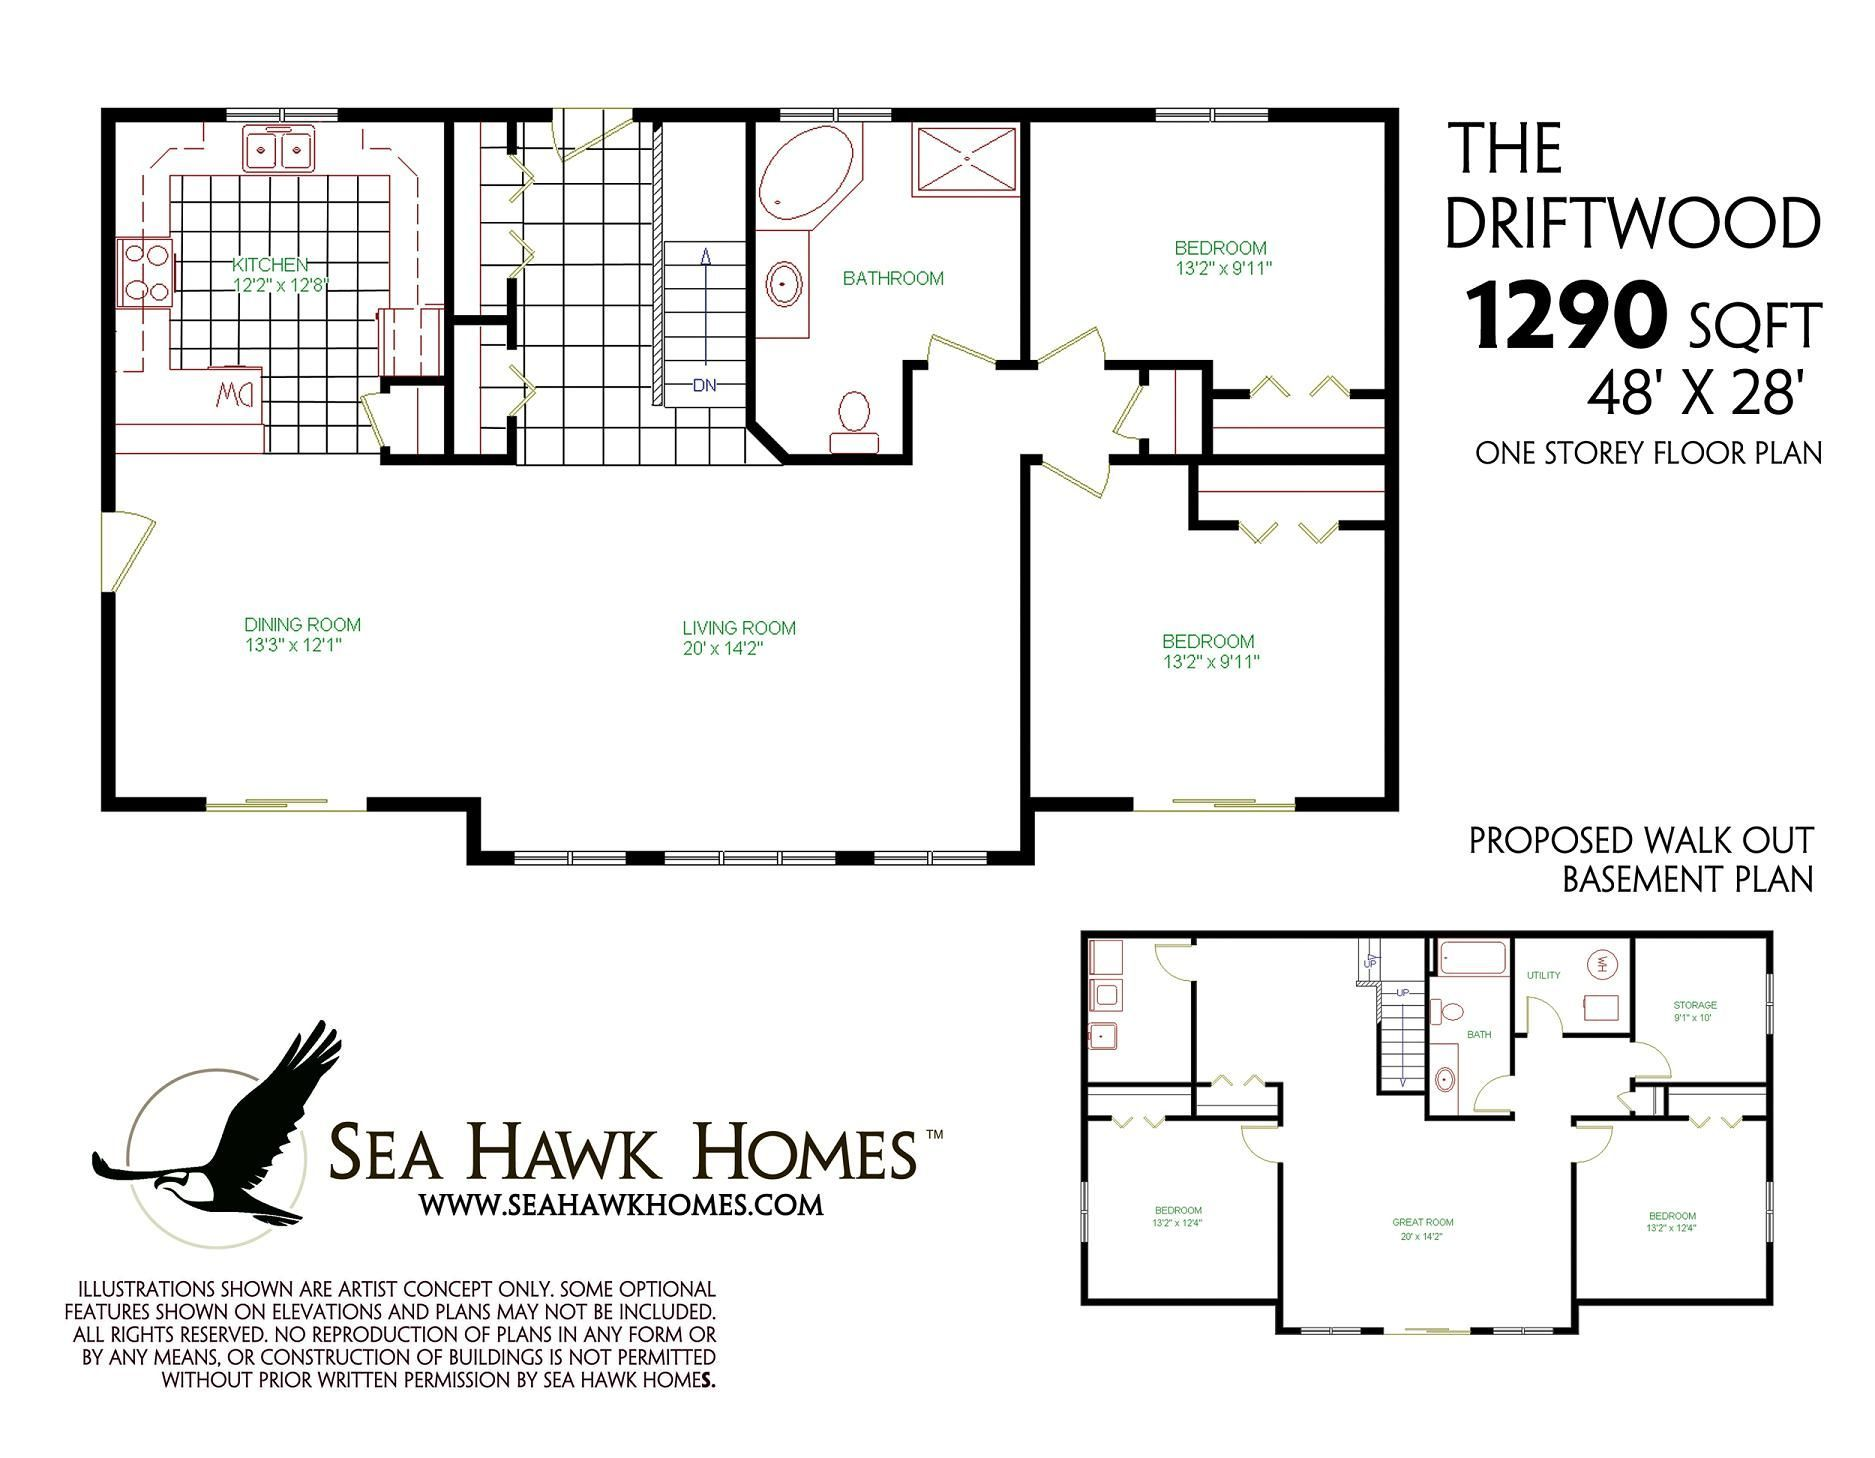 1200 Sq Ft Ranch House Plans With Basement In 2020 Basement Floor Plans Basement House Plans Four Bedroom House Plans